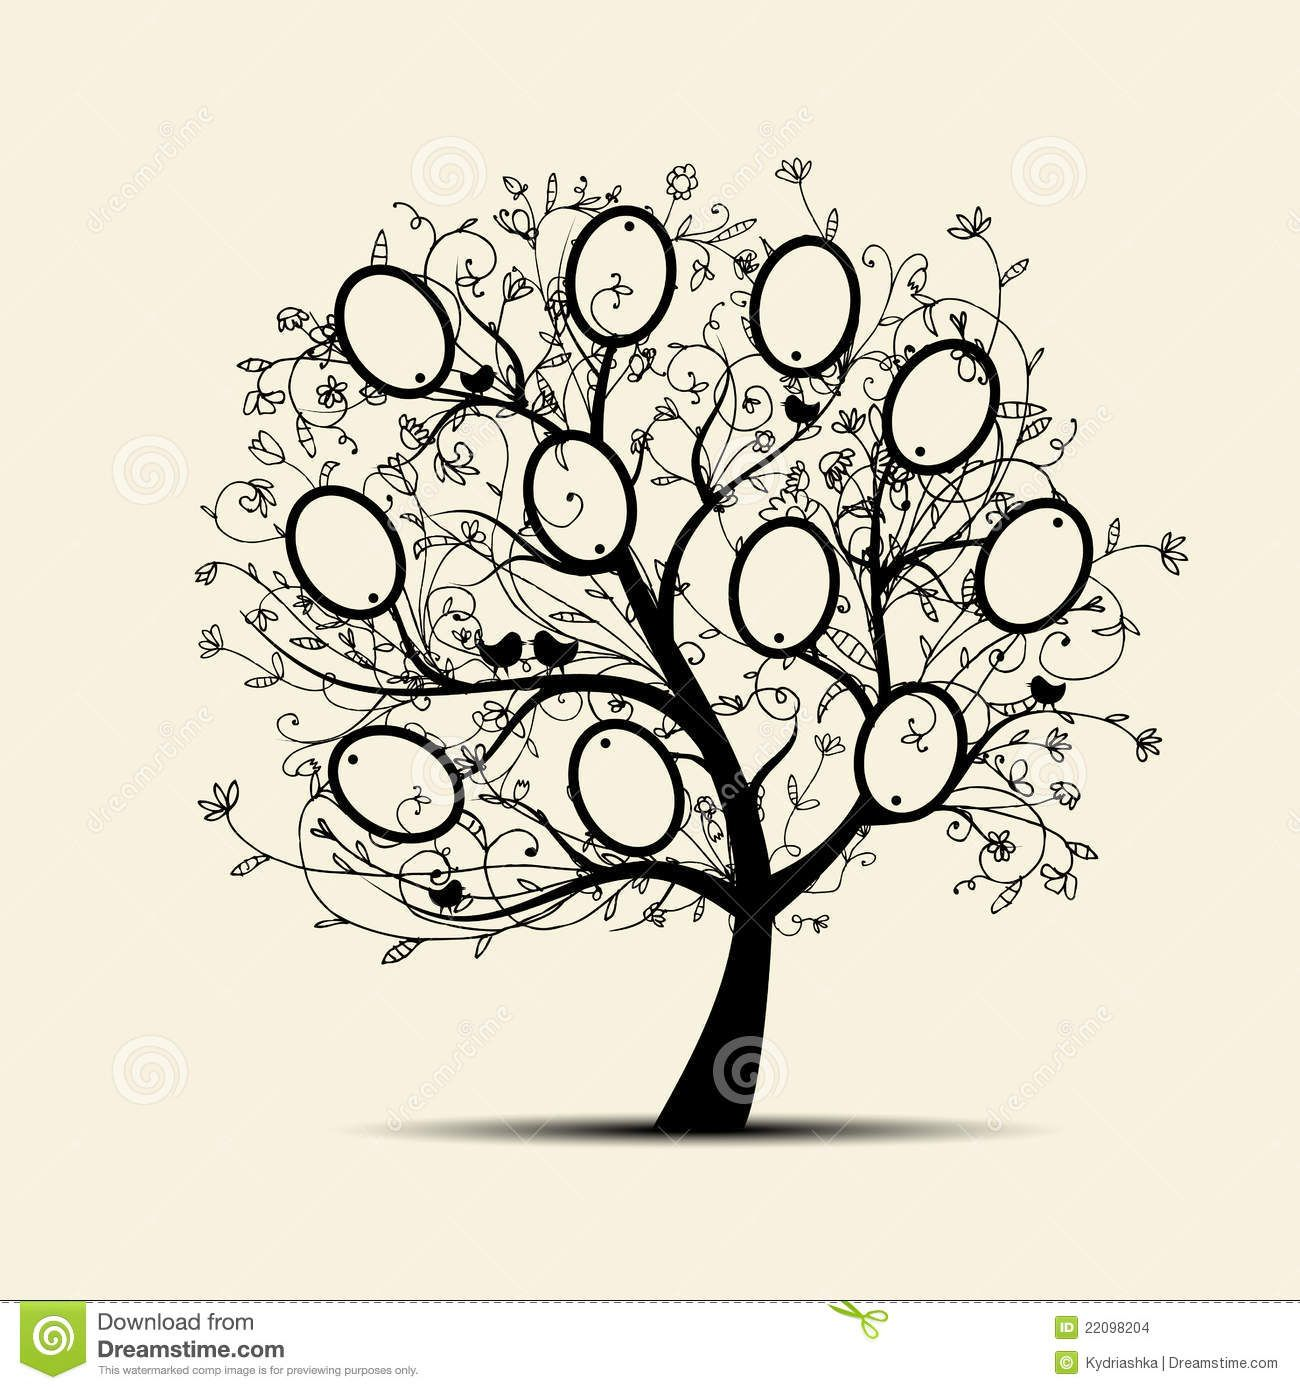 family tree design insert your photos into frames stock vector - Family Tree Design Ideas